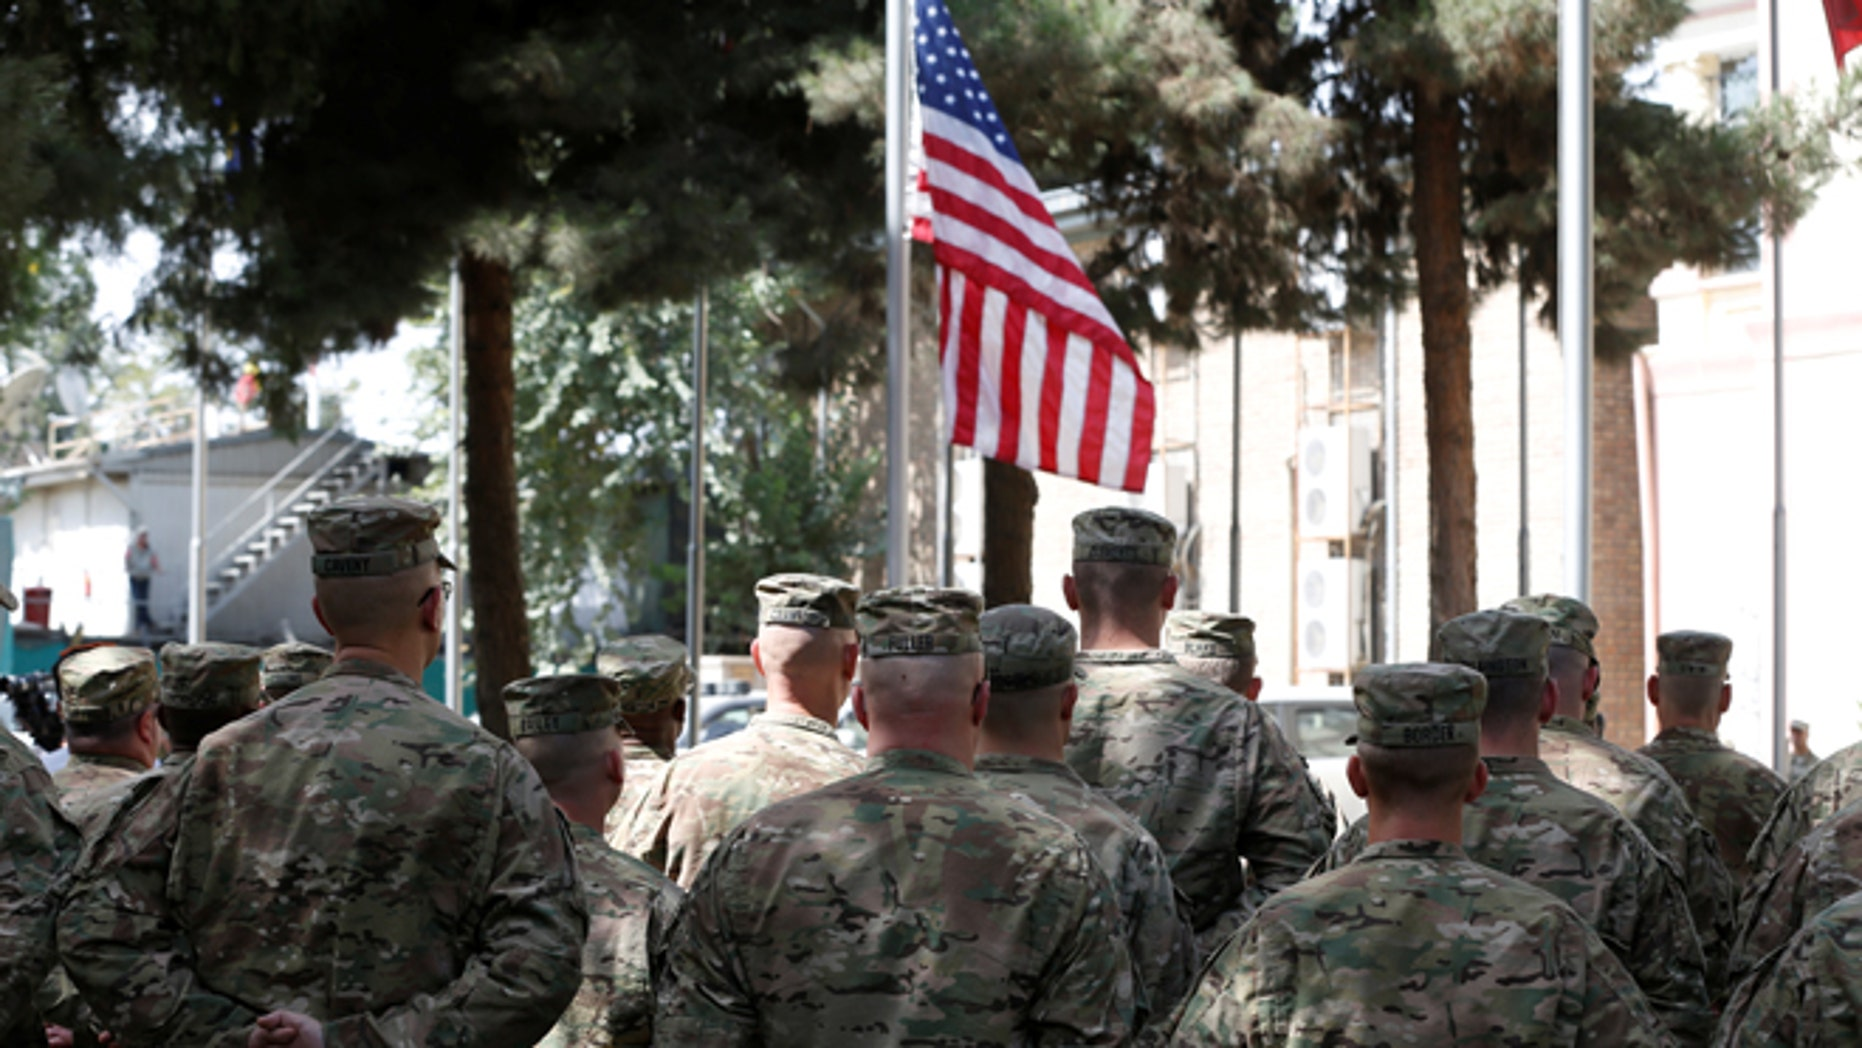 U.S. soldiers take part in a memorial ceremony to commemorate the 15th anniversary of the 9/11 attacks, in Kabul, Afghanistan September 11, 2016. REUTERS/Omar Sobhani  - RTSN7ED